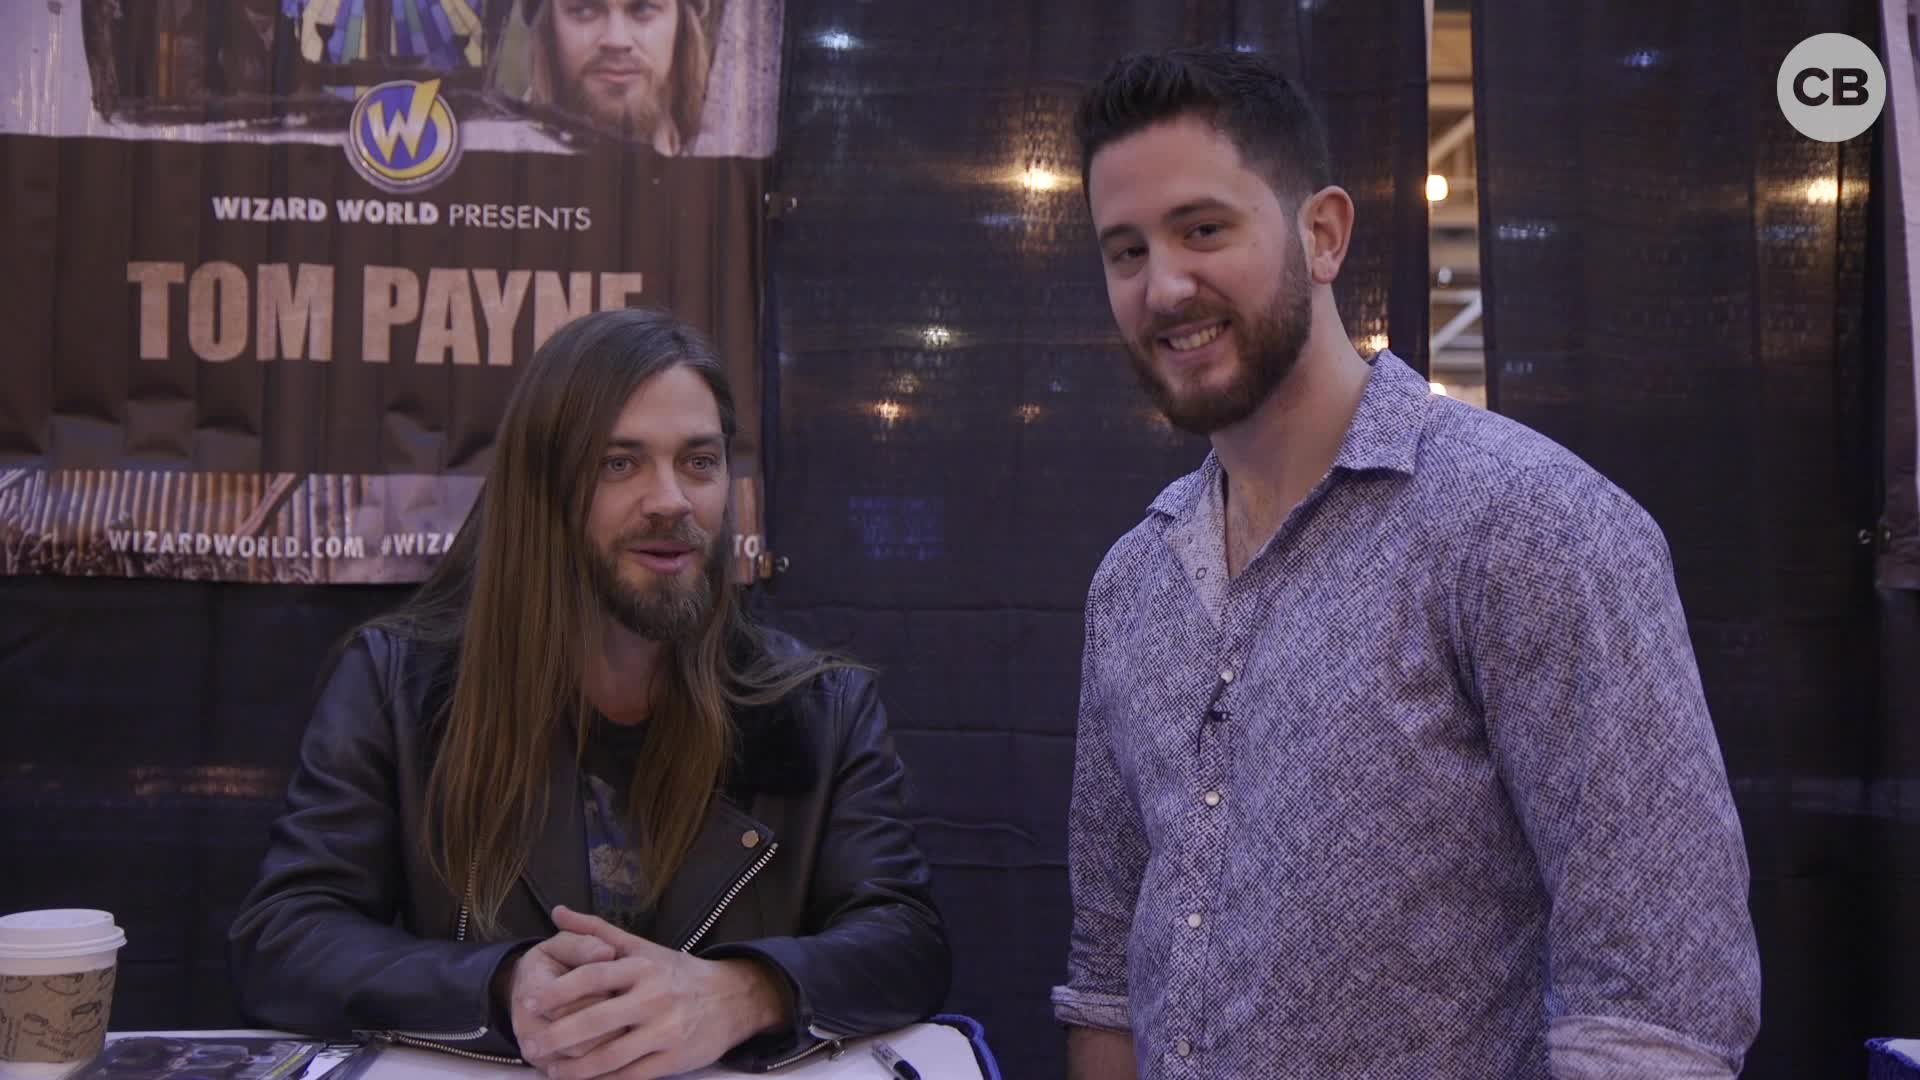 Tom Payne - Wizard World 2019 Exclusive Interview screen capture